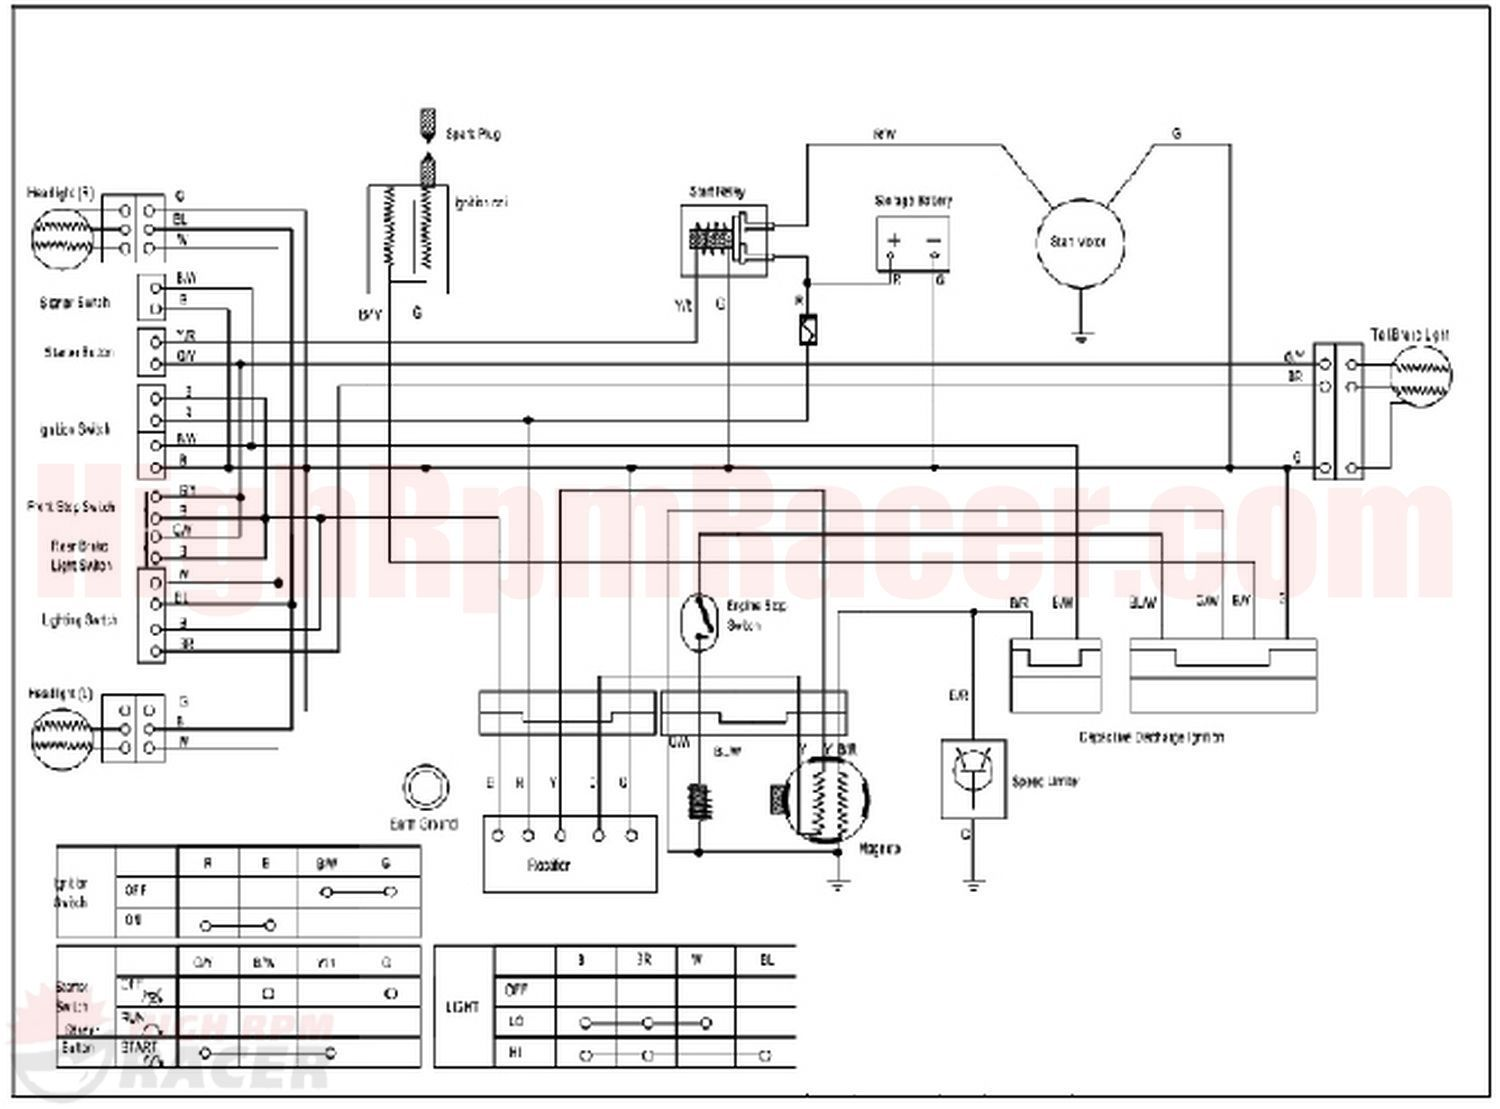 Wiring Diagram And Schematics For A Automatic Stroke Atv on